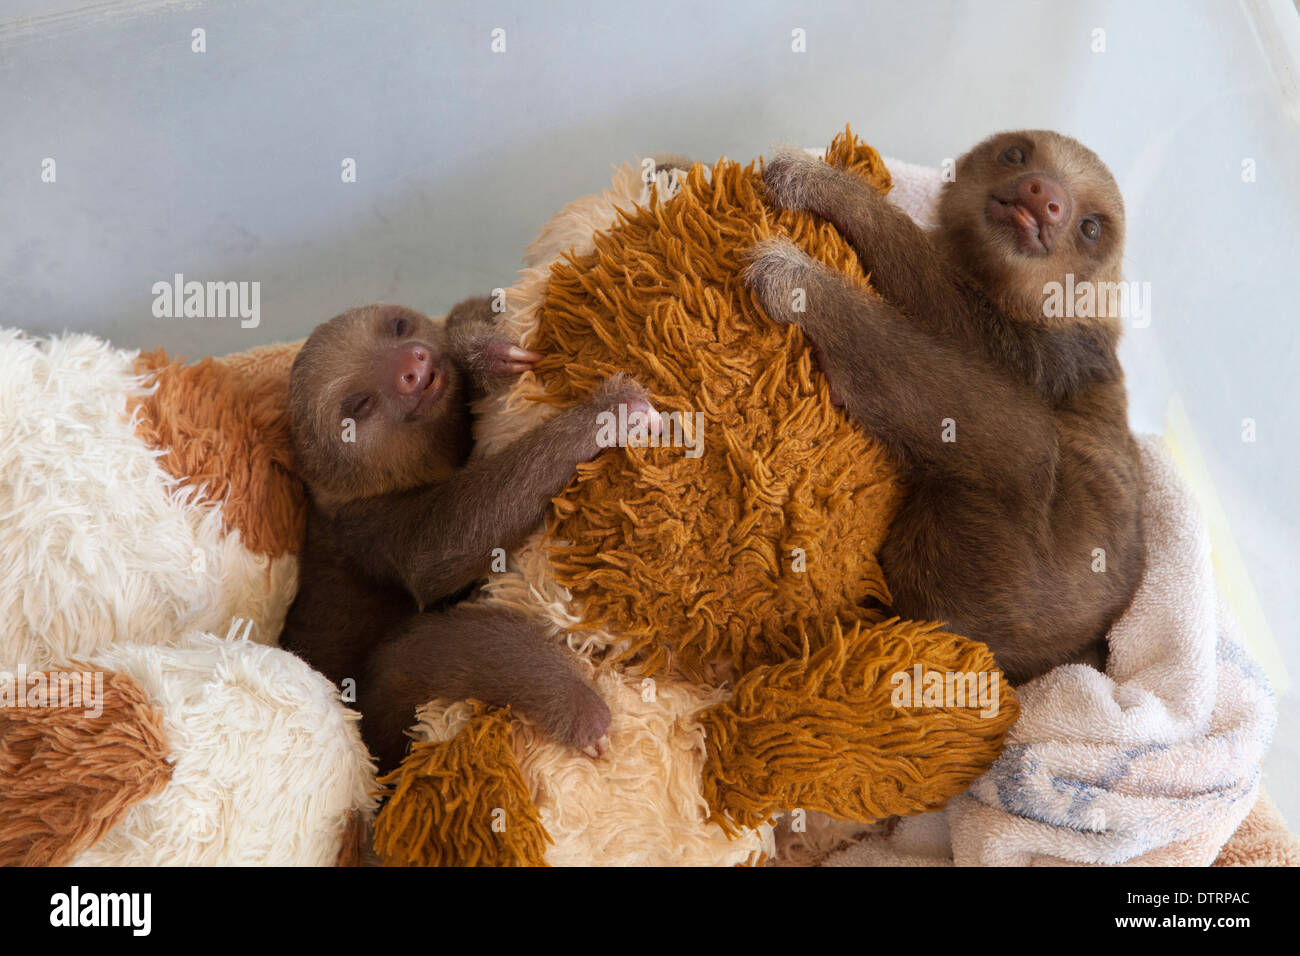 Baby Hoffmann's Two-toed Sloths (Choloepus hoffmanni) with stuffed toys in nursery at Sloth Sanctuary - Stock Image